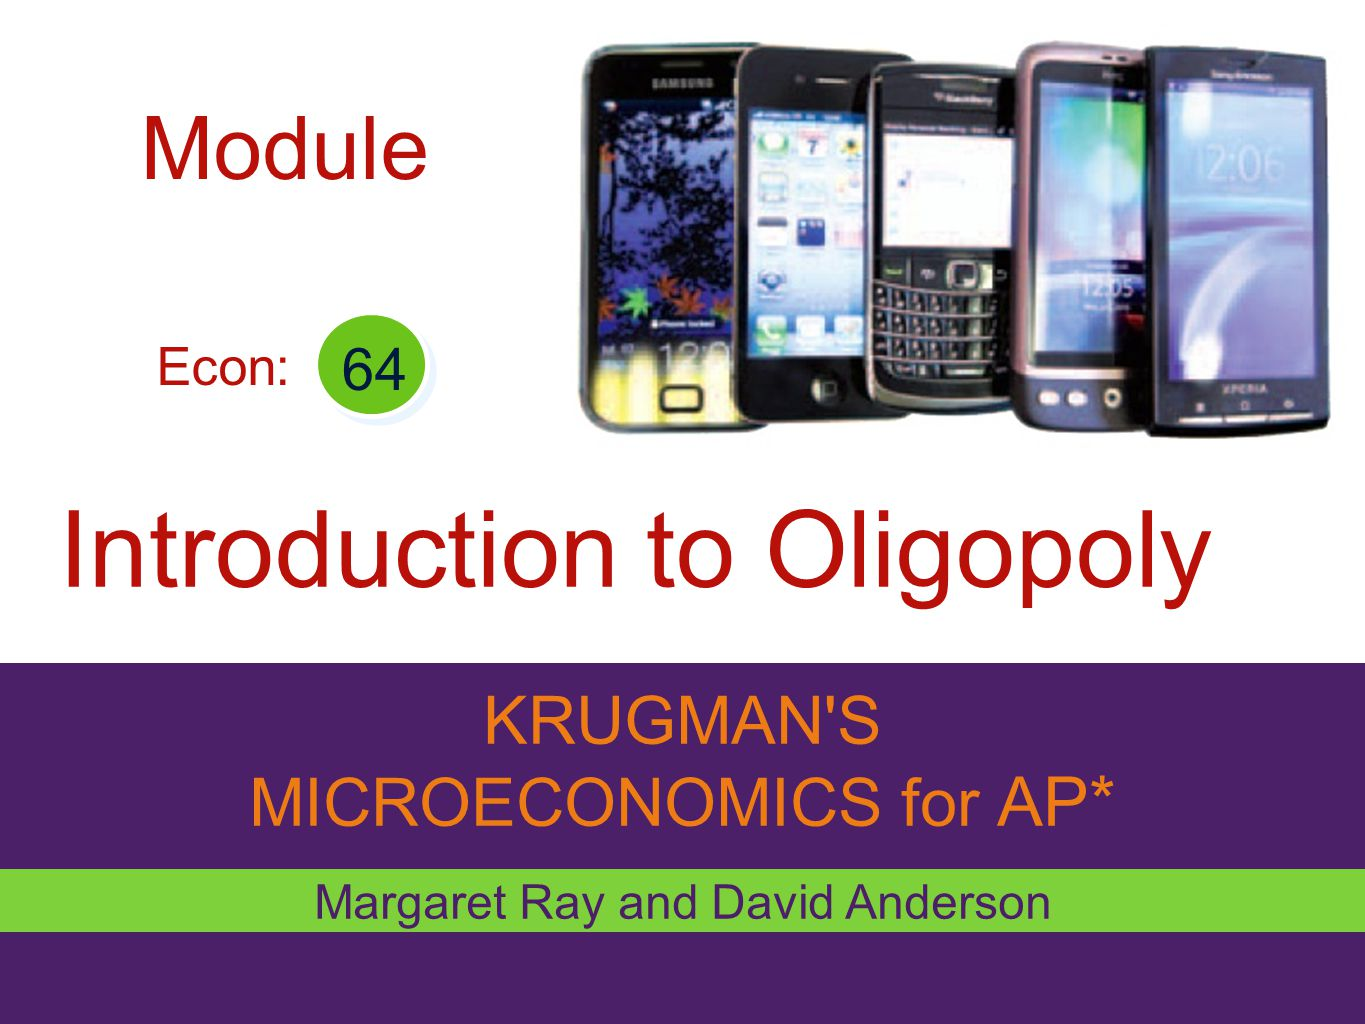 Introduction to Oligopoly